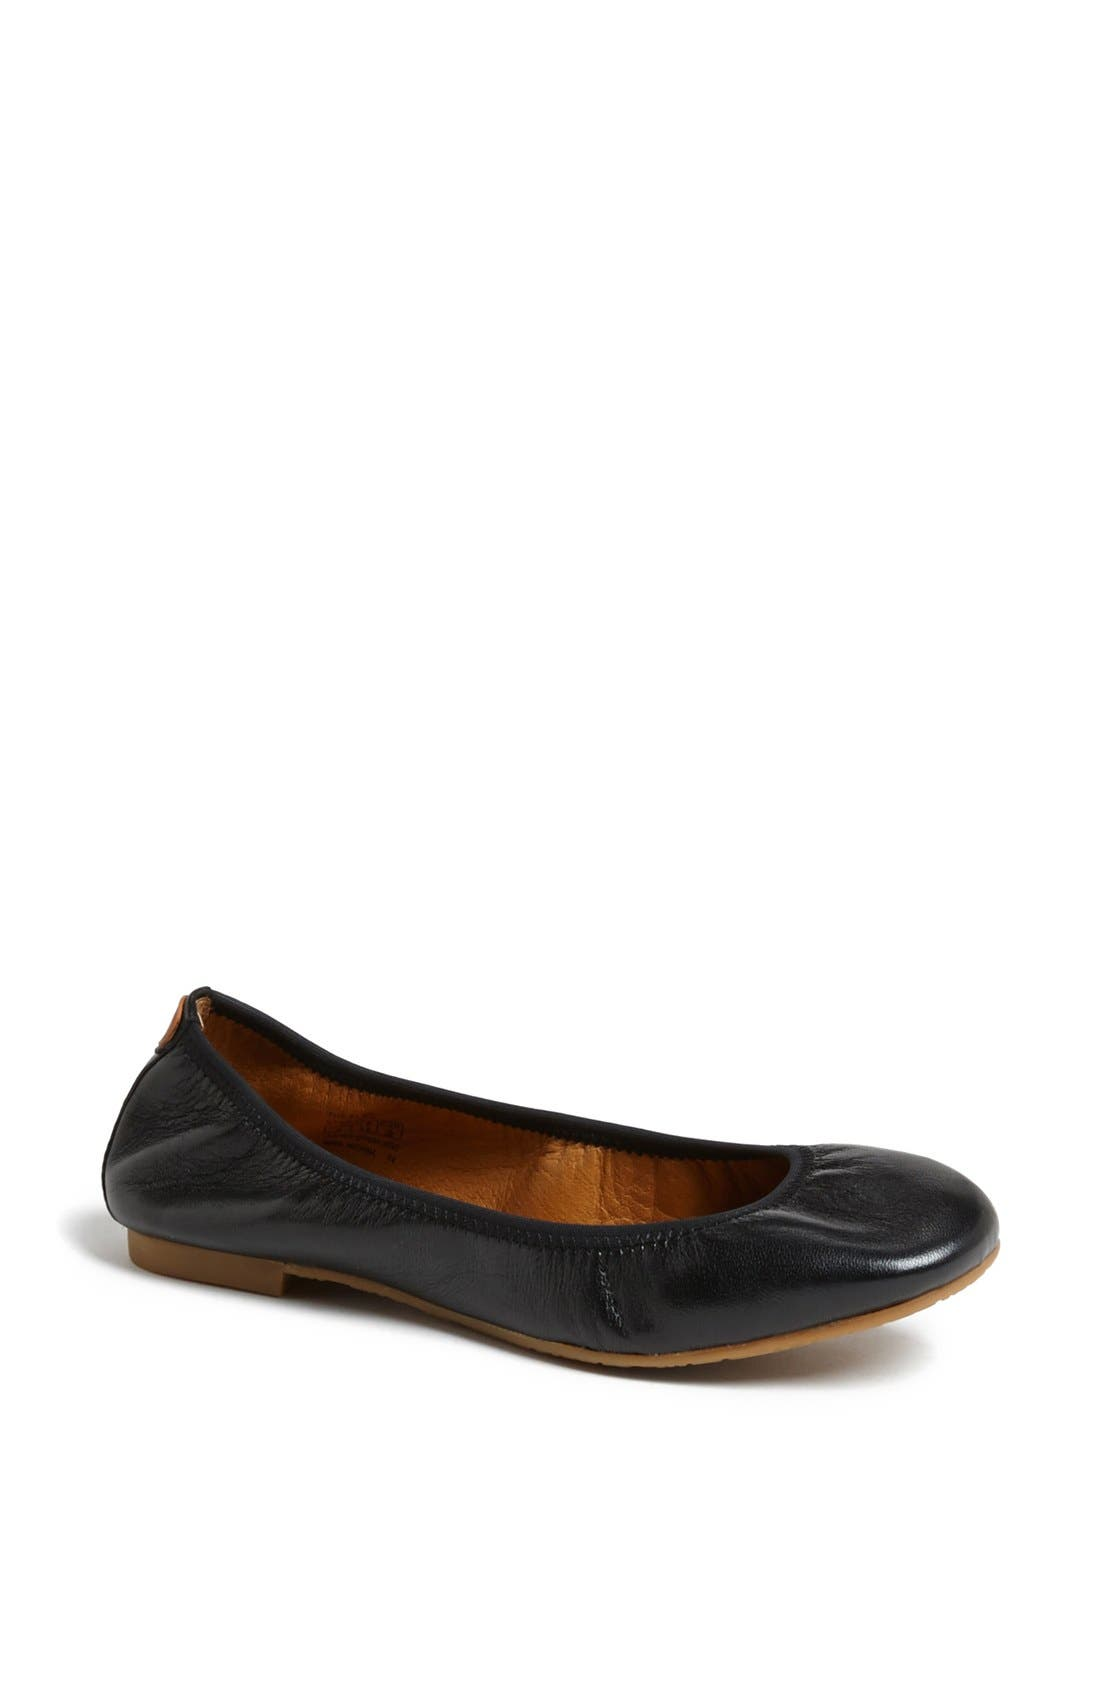 Alternate Image 1 Selected - Juil 'The Flat' Earthing Leather Ballet Flat